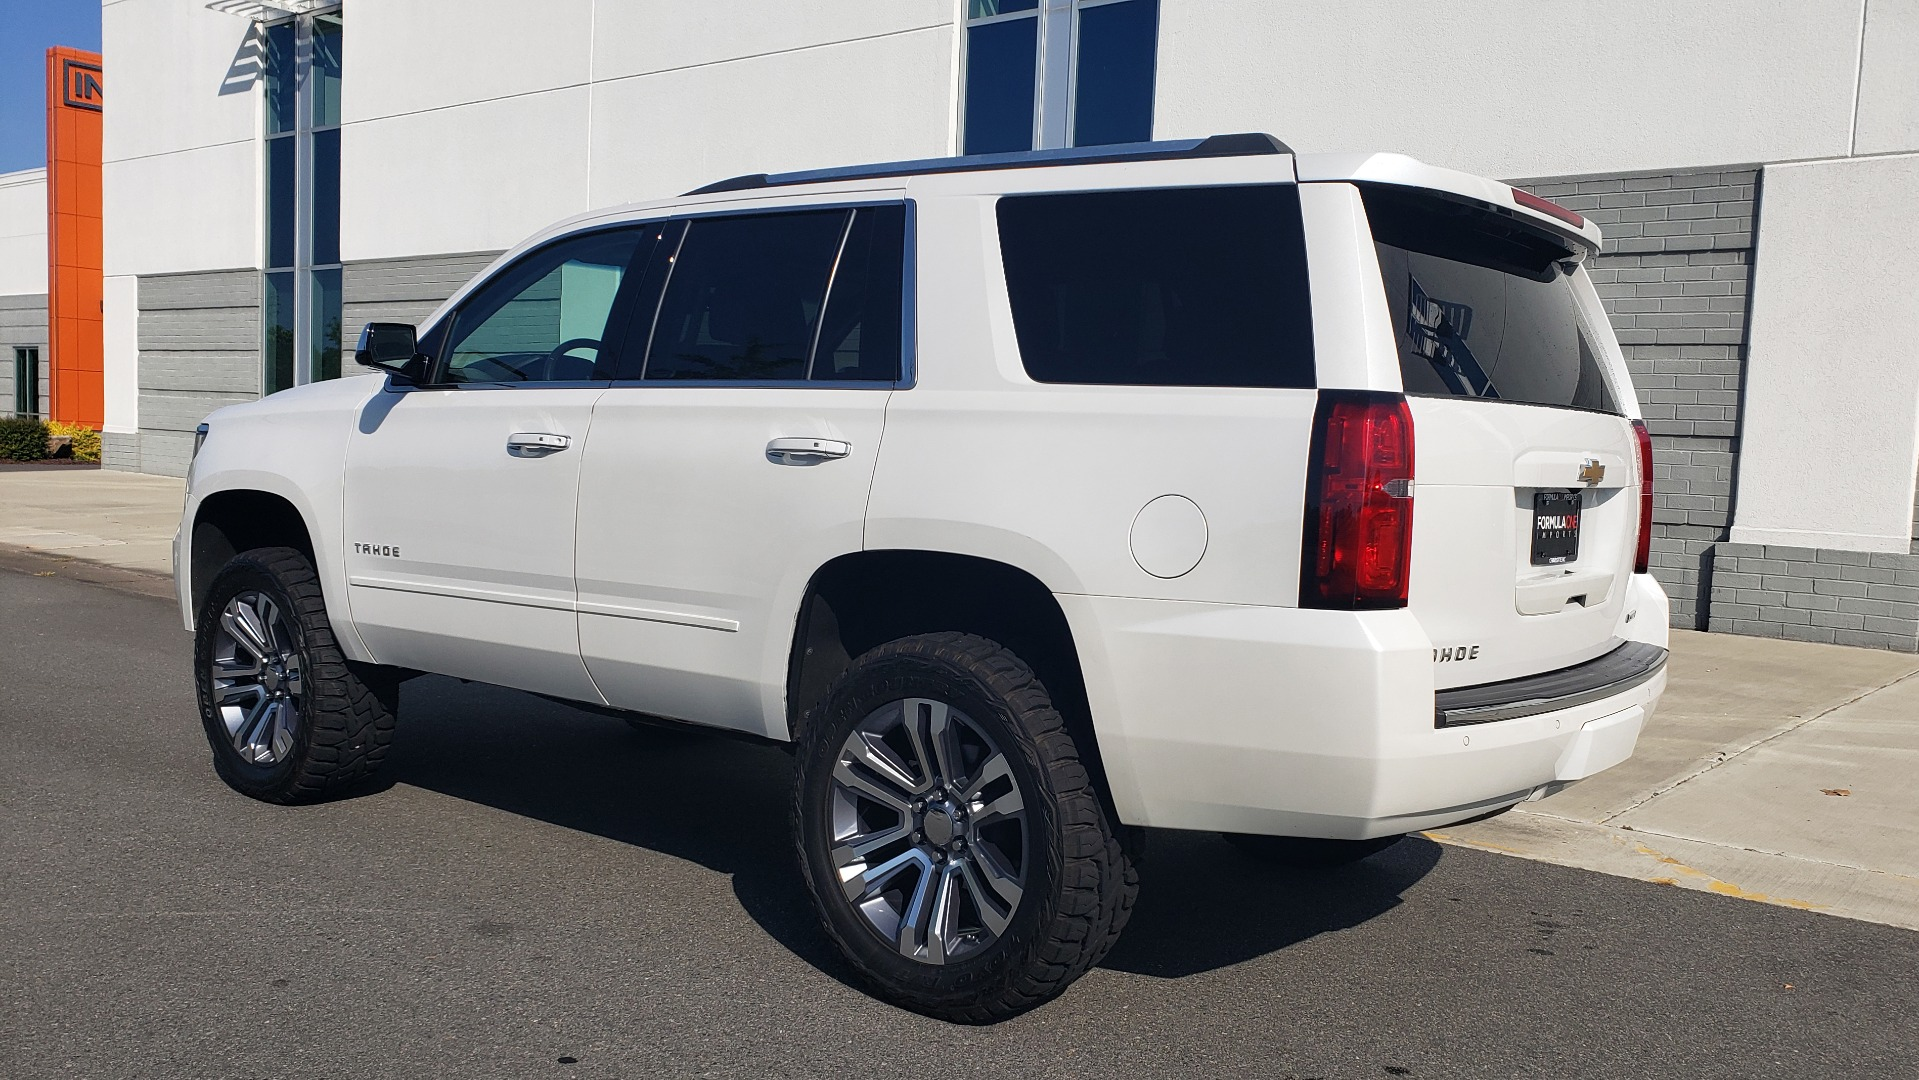 Used 2018 Chevrolet TAHOE PREMIER 4X4 / NAV / BOSE / SUNROOF / ENT SYS / 3-ROW / REARVIEW for sale $55,995 at Formula Imports in Charlotte NC 28227 5